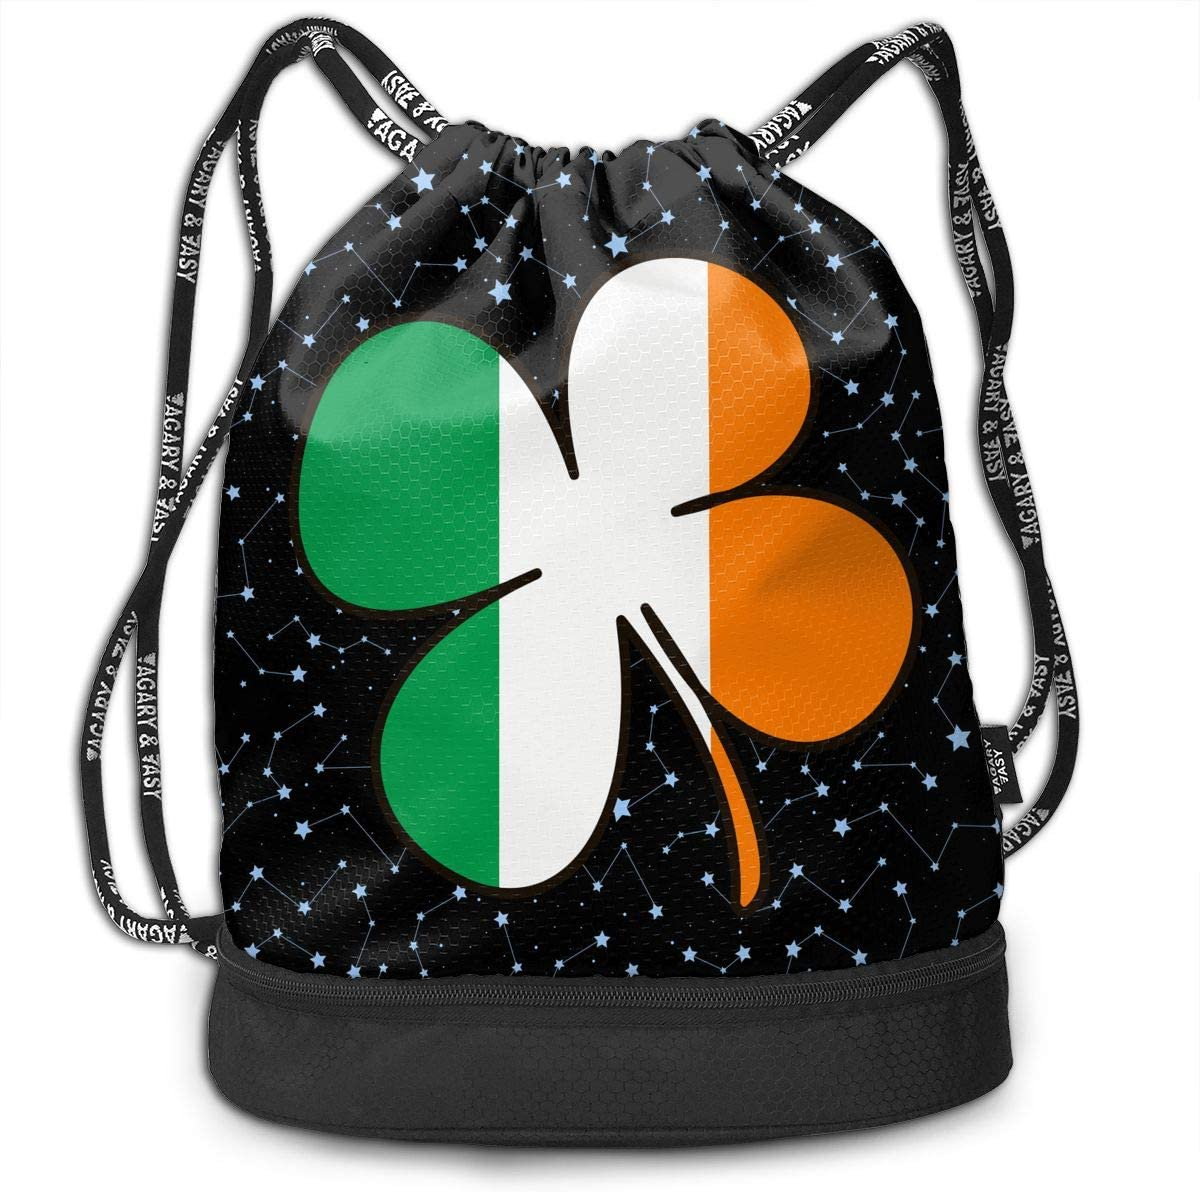 Four Leaf Clover Shamrock Ireland Flag Drawstring Bag Multifunctional String Backpack Custom Cinch Backpack Sport Gym Sack